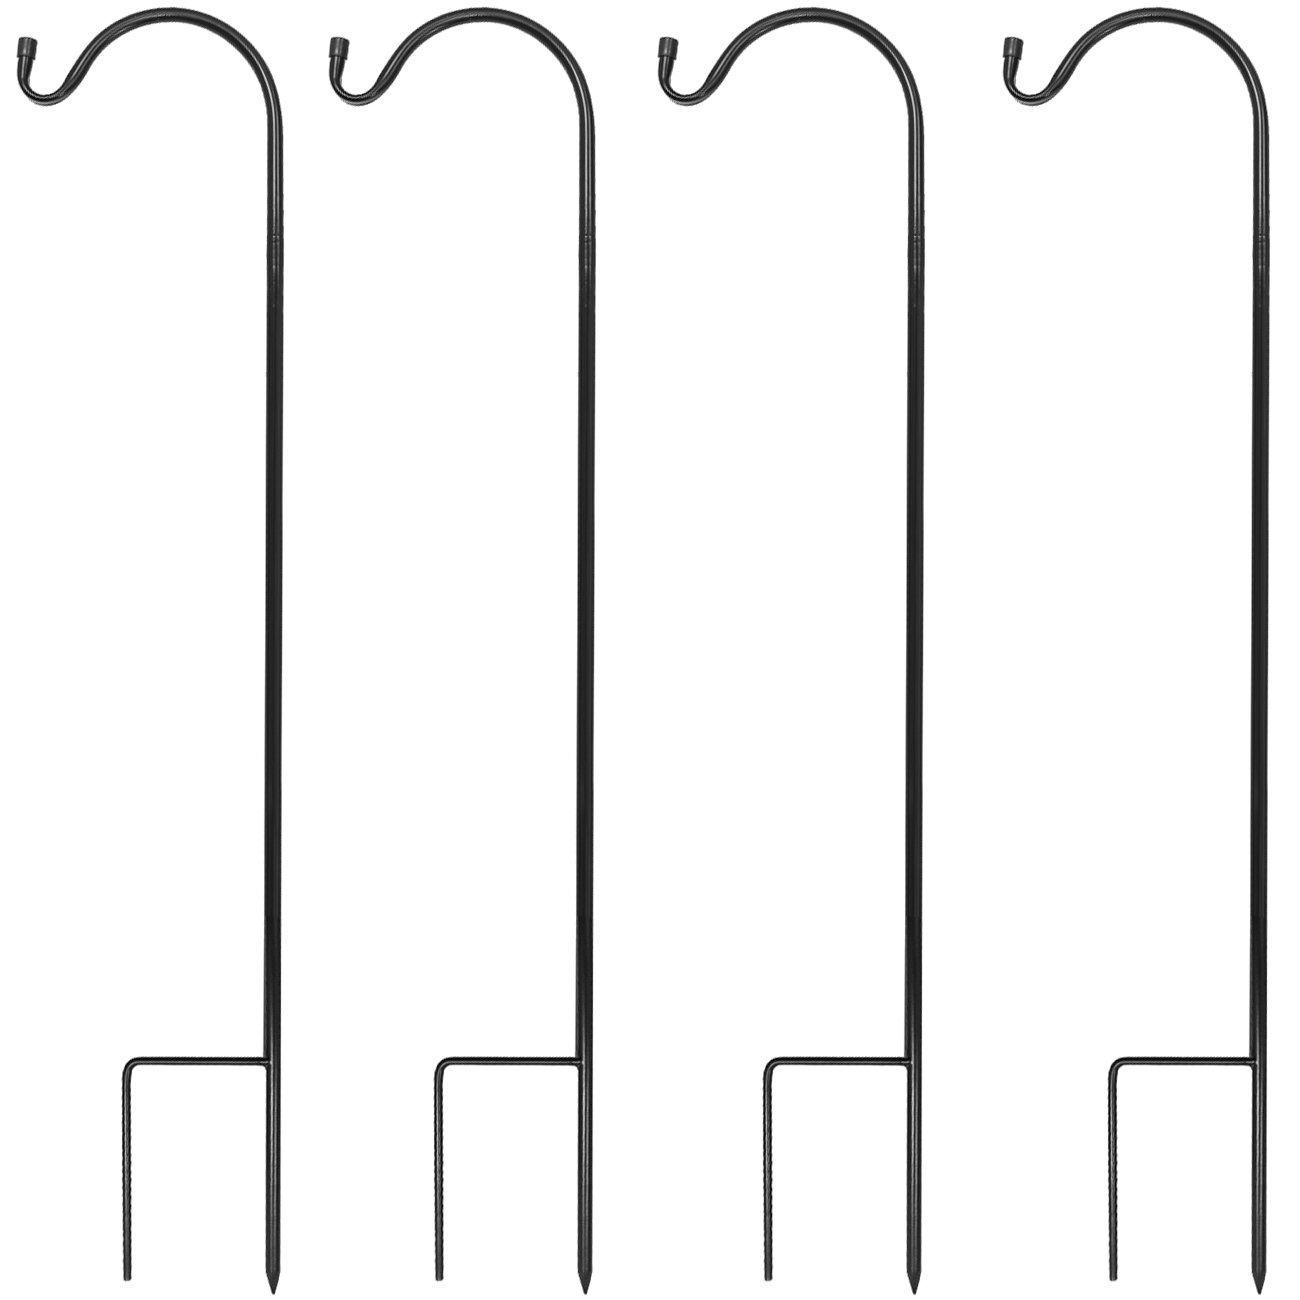 Sorbus® Shepherd's Hooks - Set of 4 Extendable Garden Planter Stakes for Bird Feeders, Outdoor Décor, Plants, Lights, Lanterns, Flower Baskets, and More! Heavy Duty (4 Pack) by Sorbus